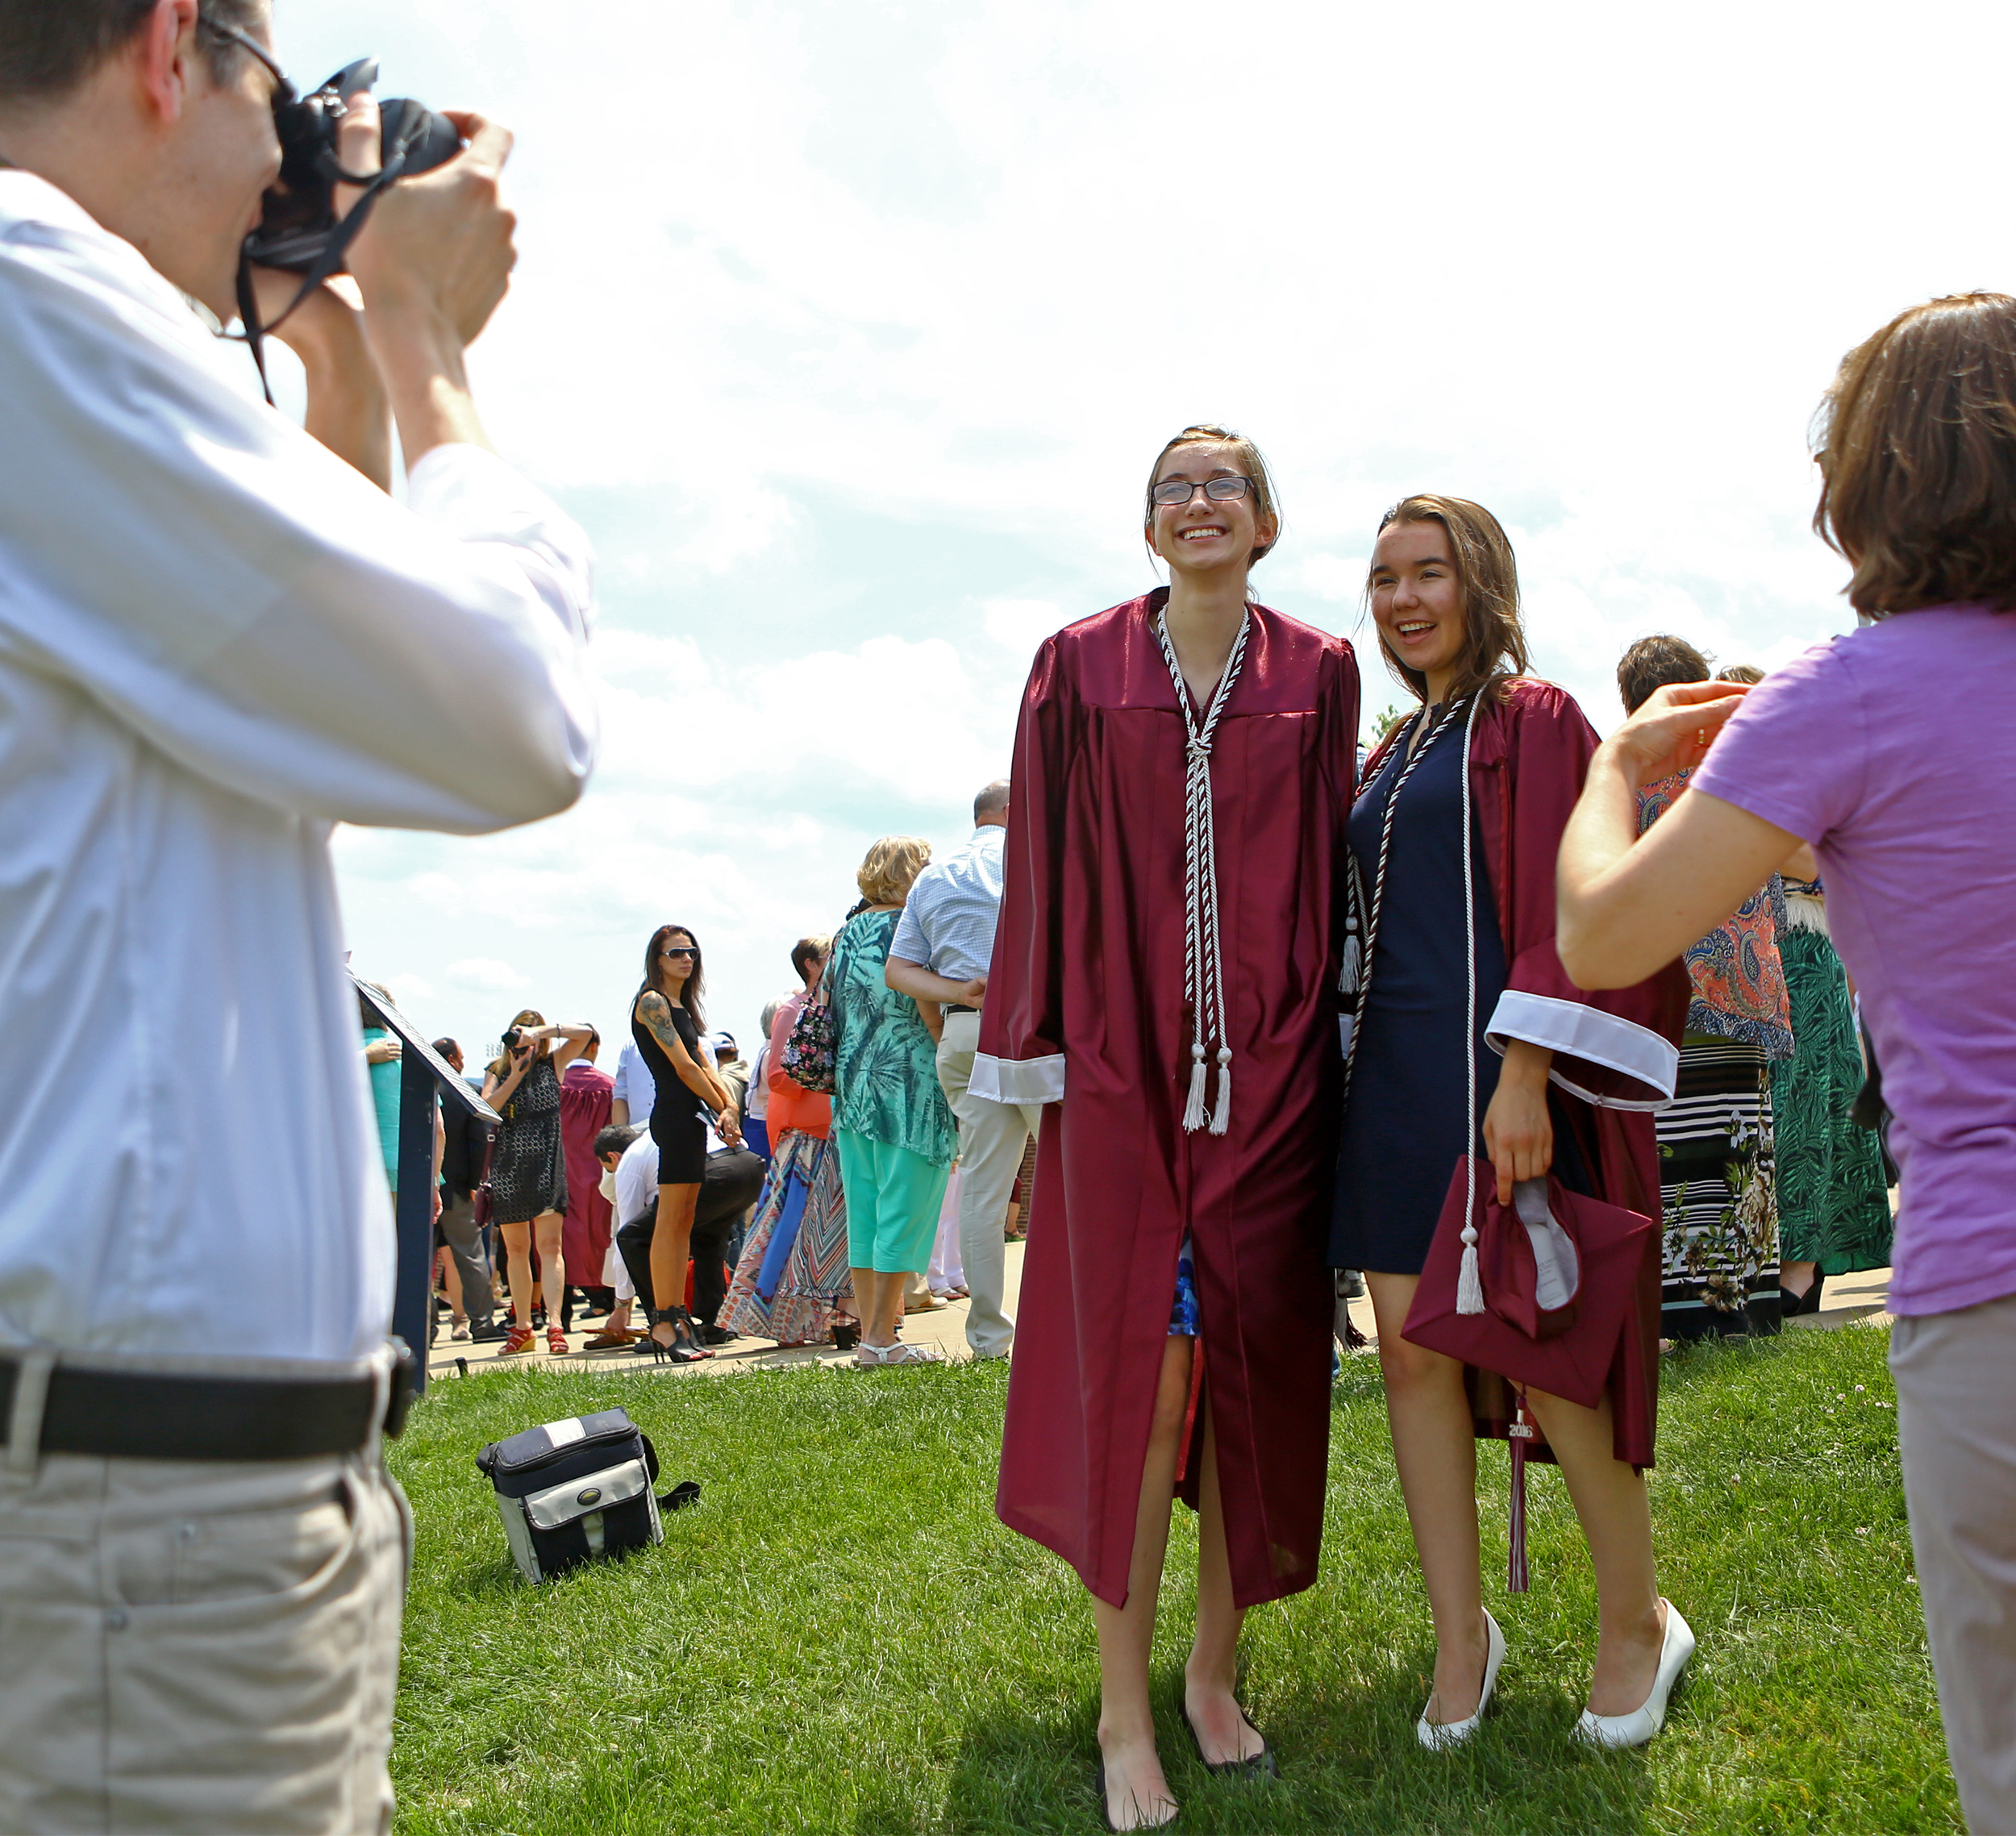 Bethany Parkinson, left, and Natalie Farnsworth, right, pose ofr photos outside of the Bryce Jordan Center following the State College Area High School commencement ceremony on Saturday, June 11, 2016.